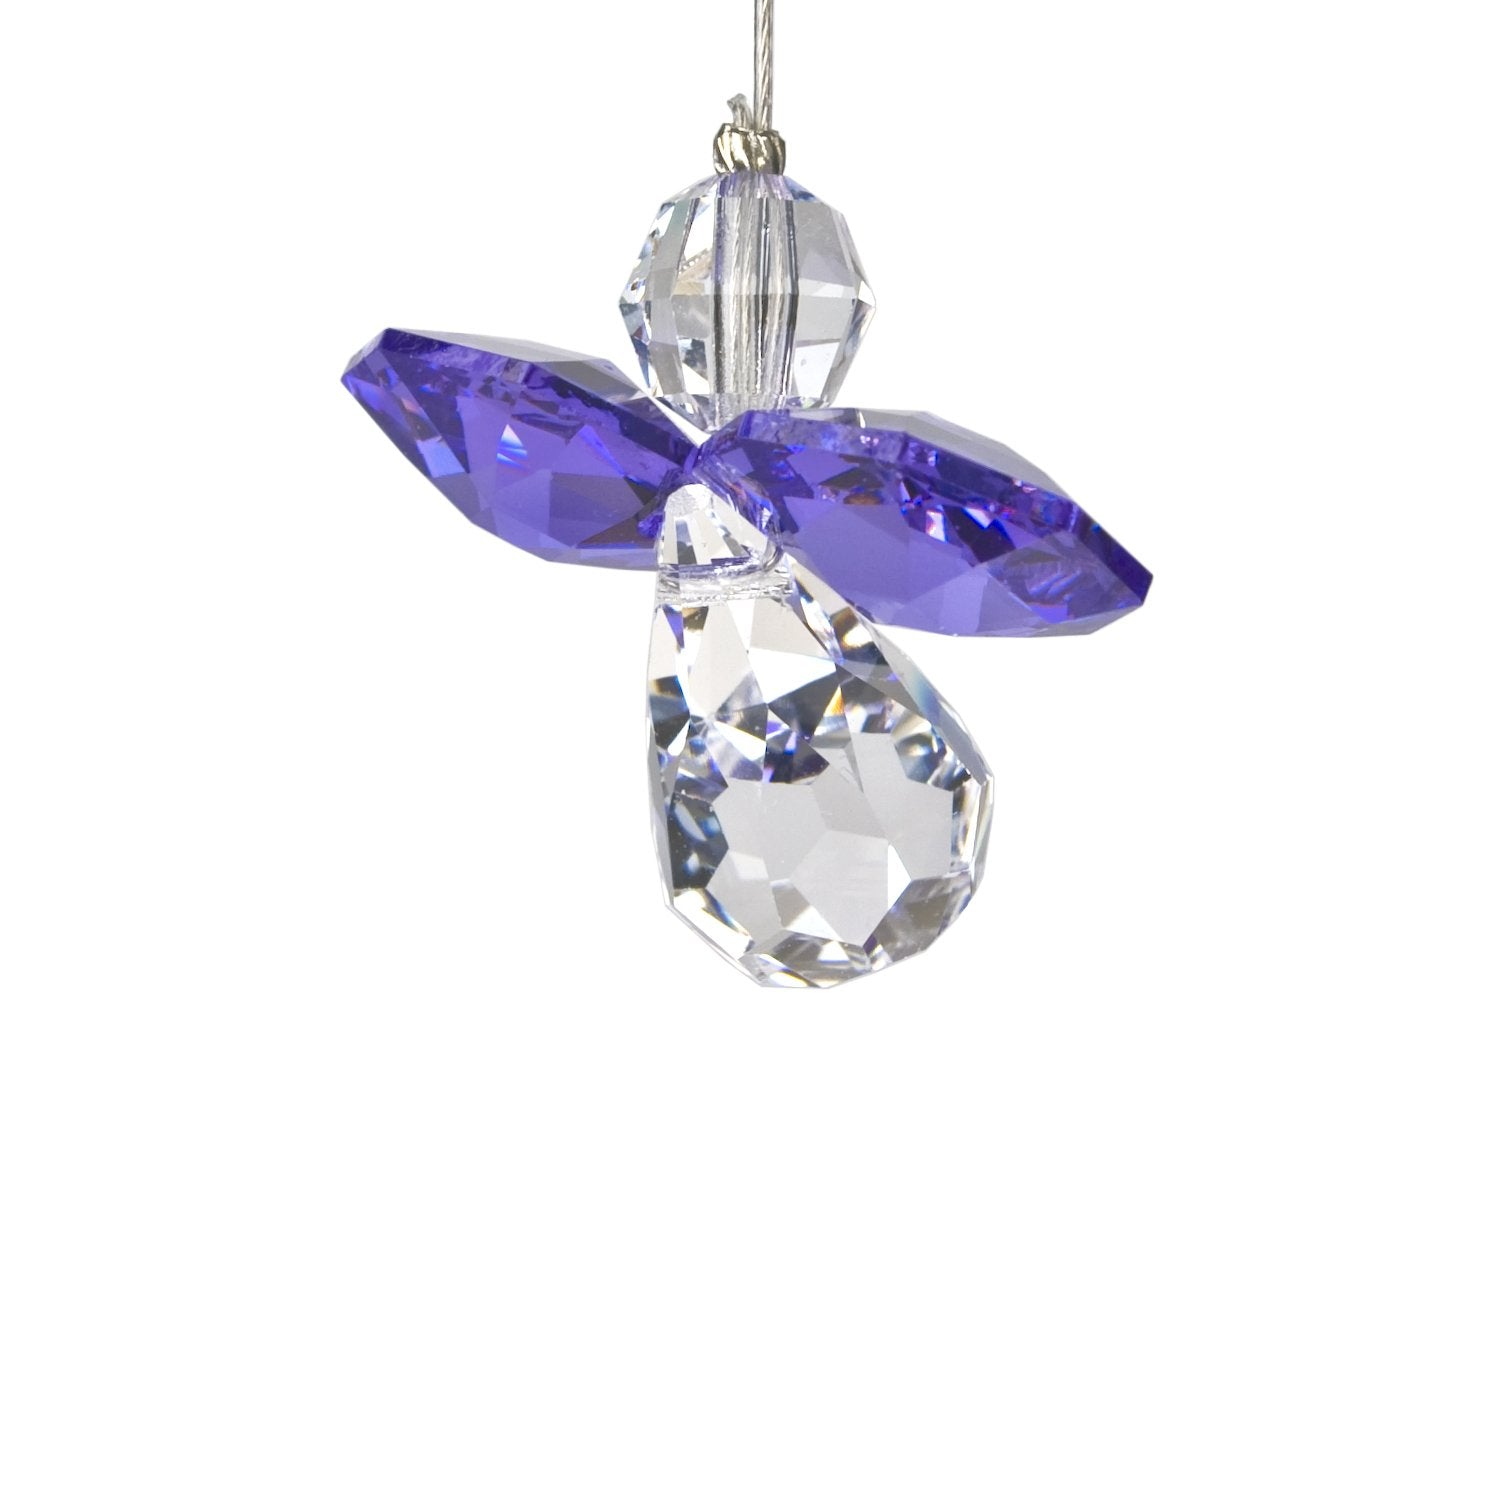 Crystal Guardian Angel Suncatcher - Amethyst (February) main image